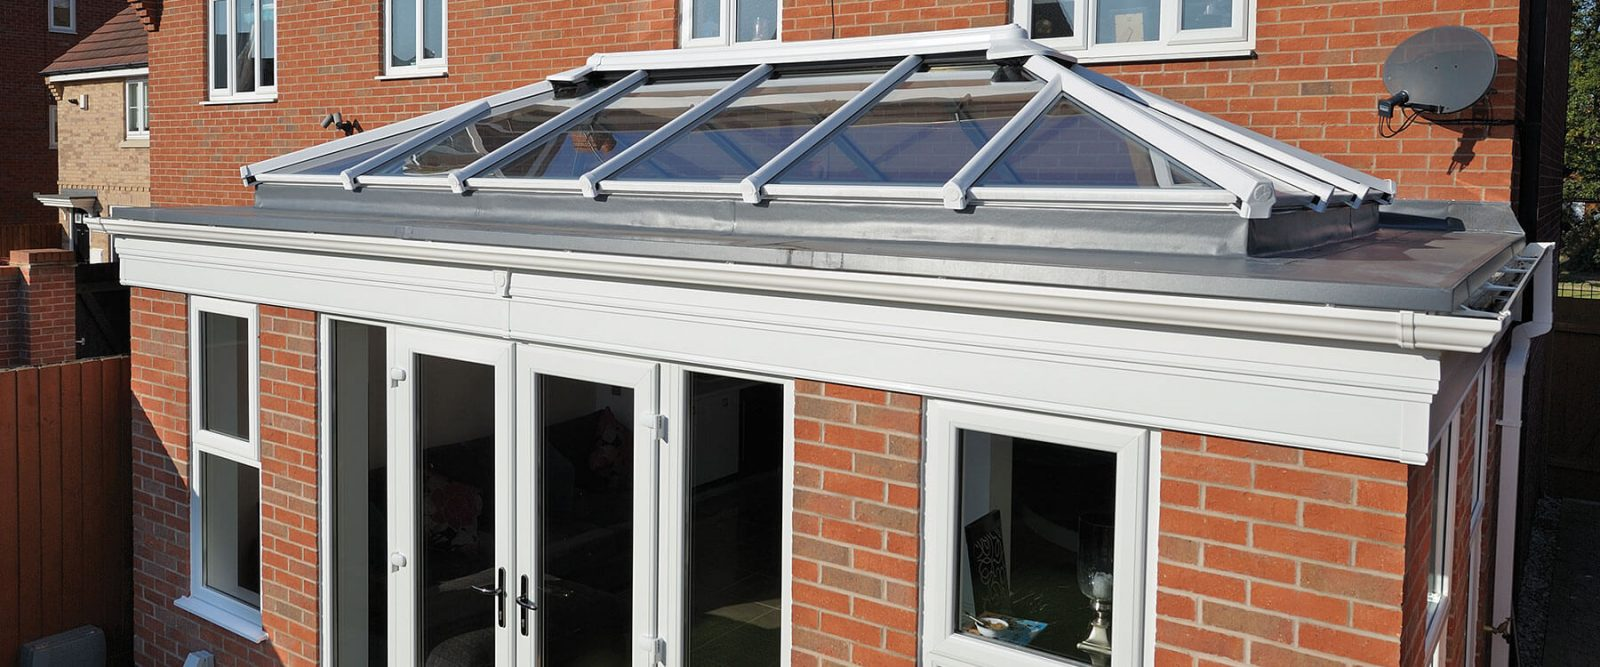 uPVC Orangery and lantern roof